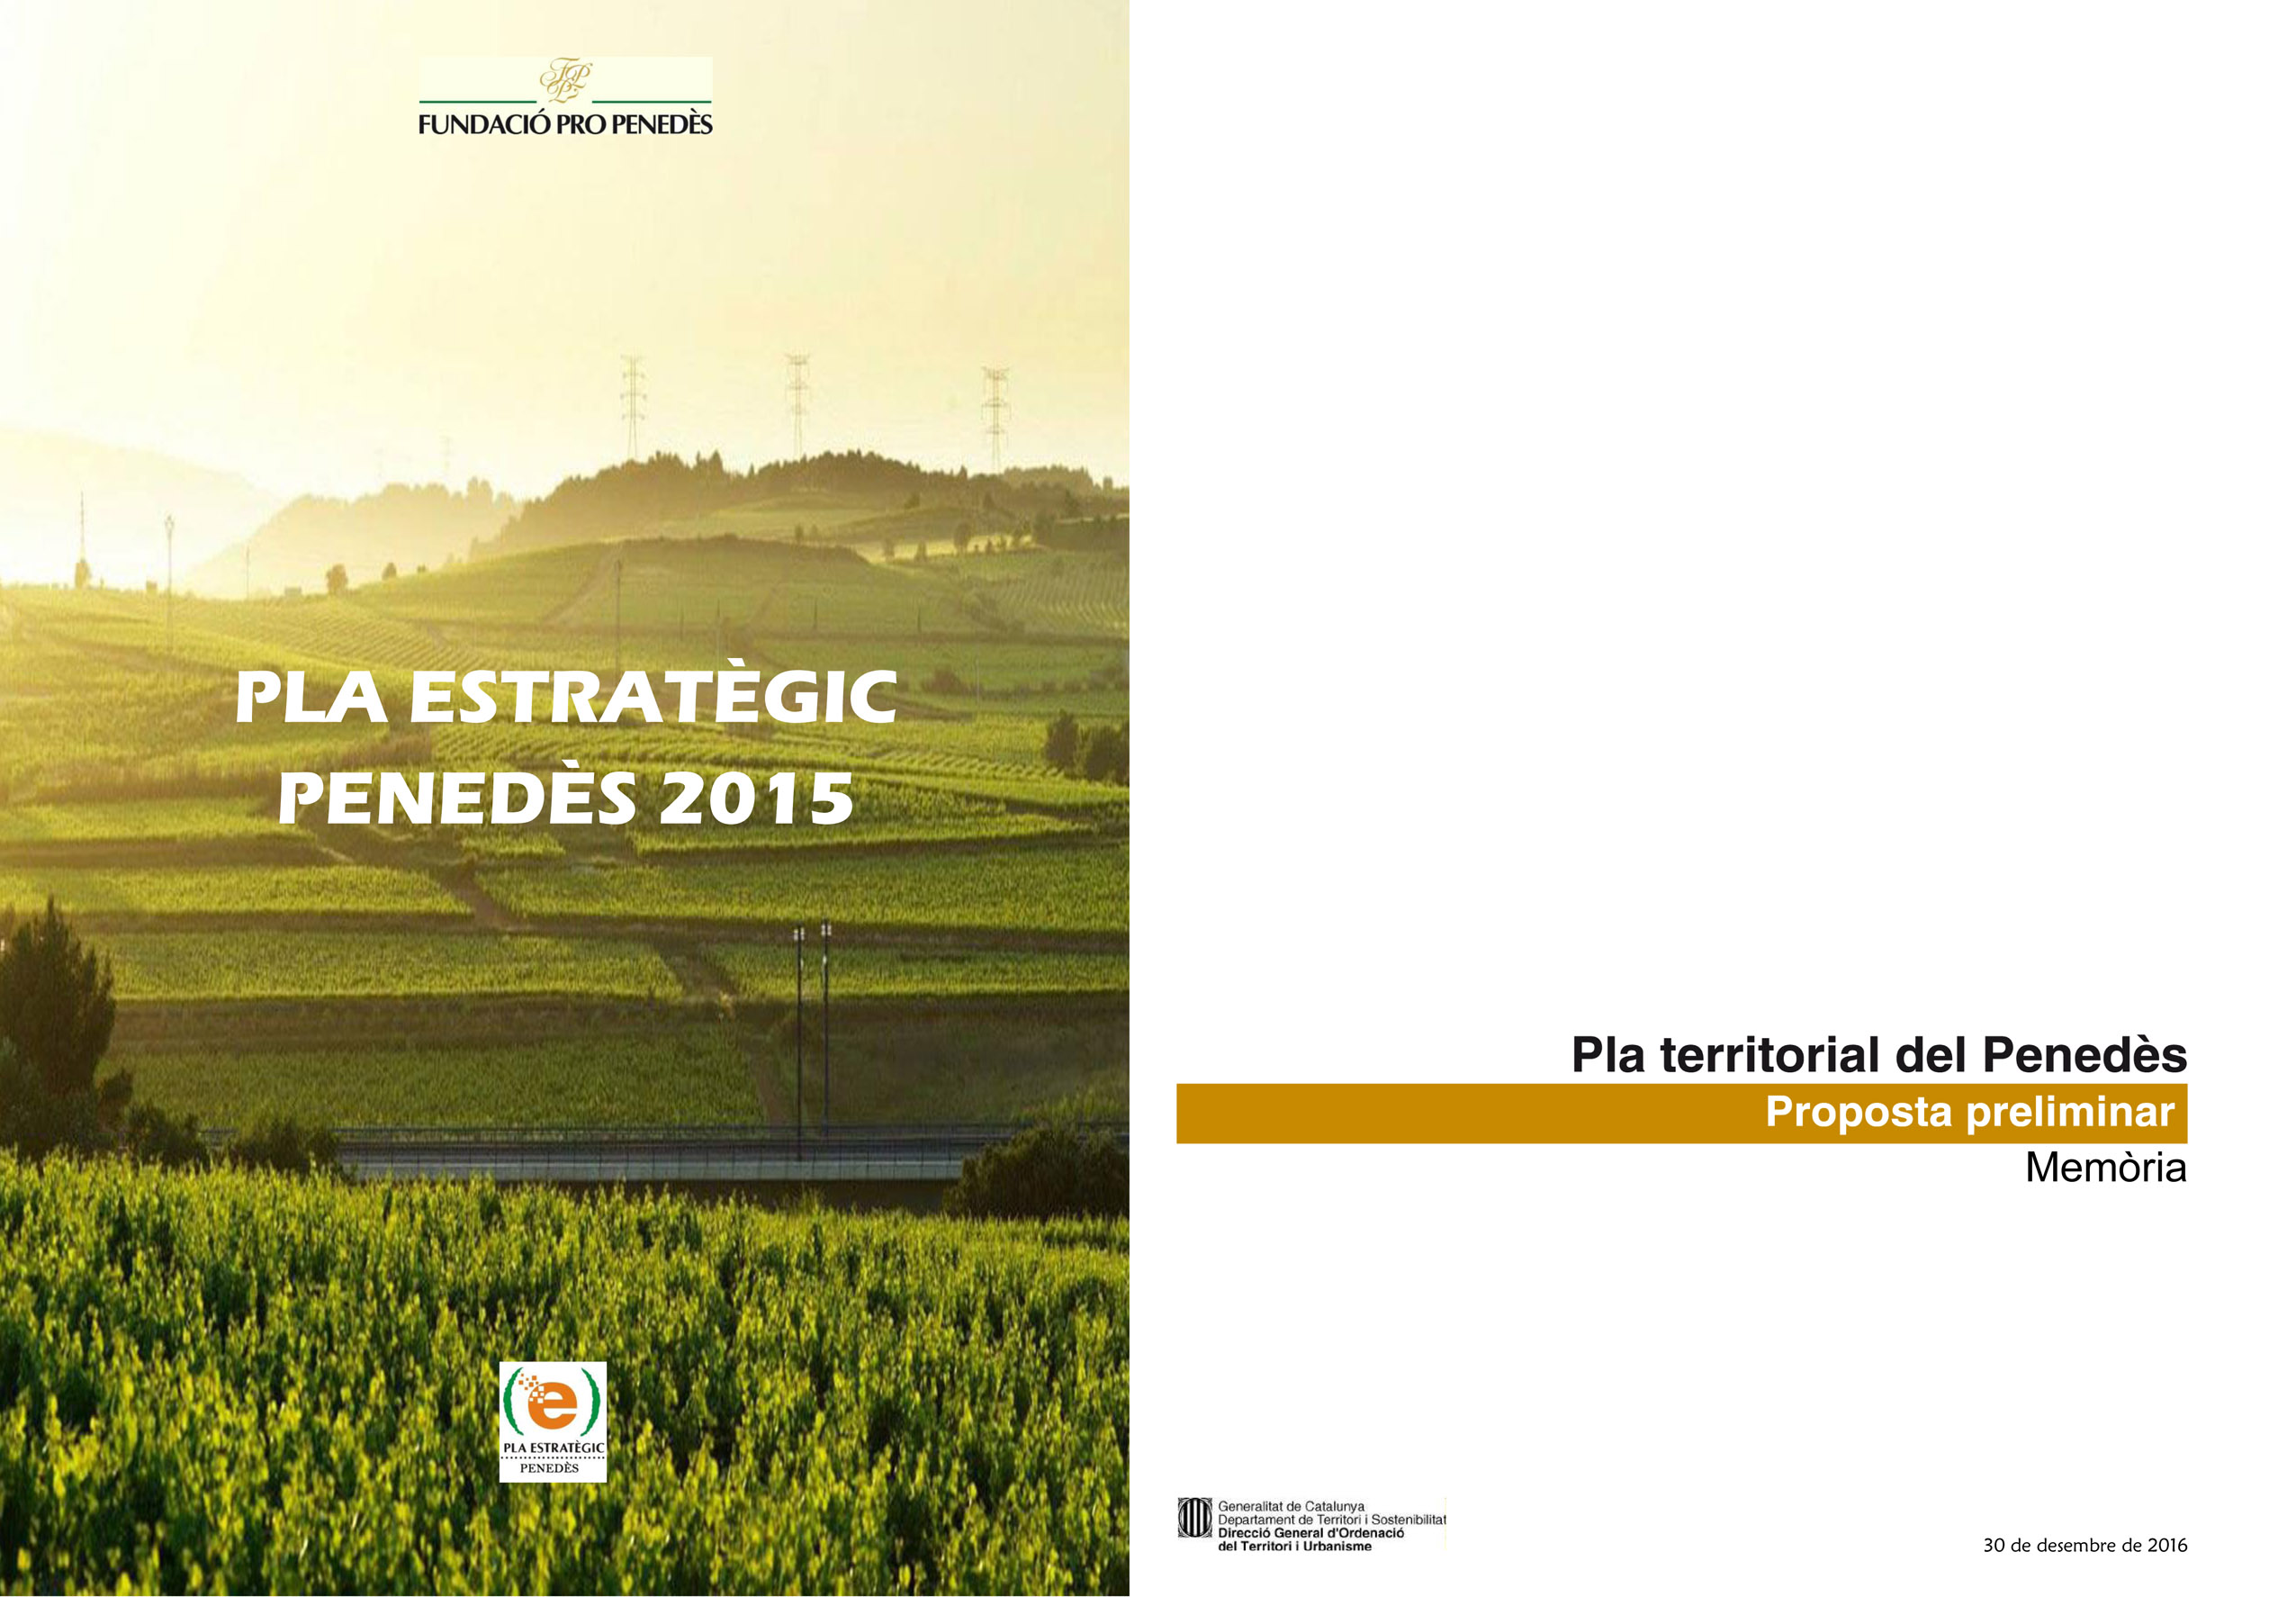 PESTRATEGIC2015 PTERRITORIAL